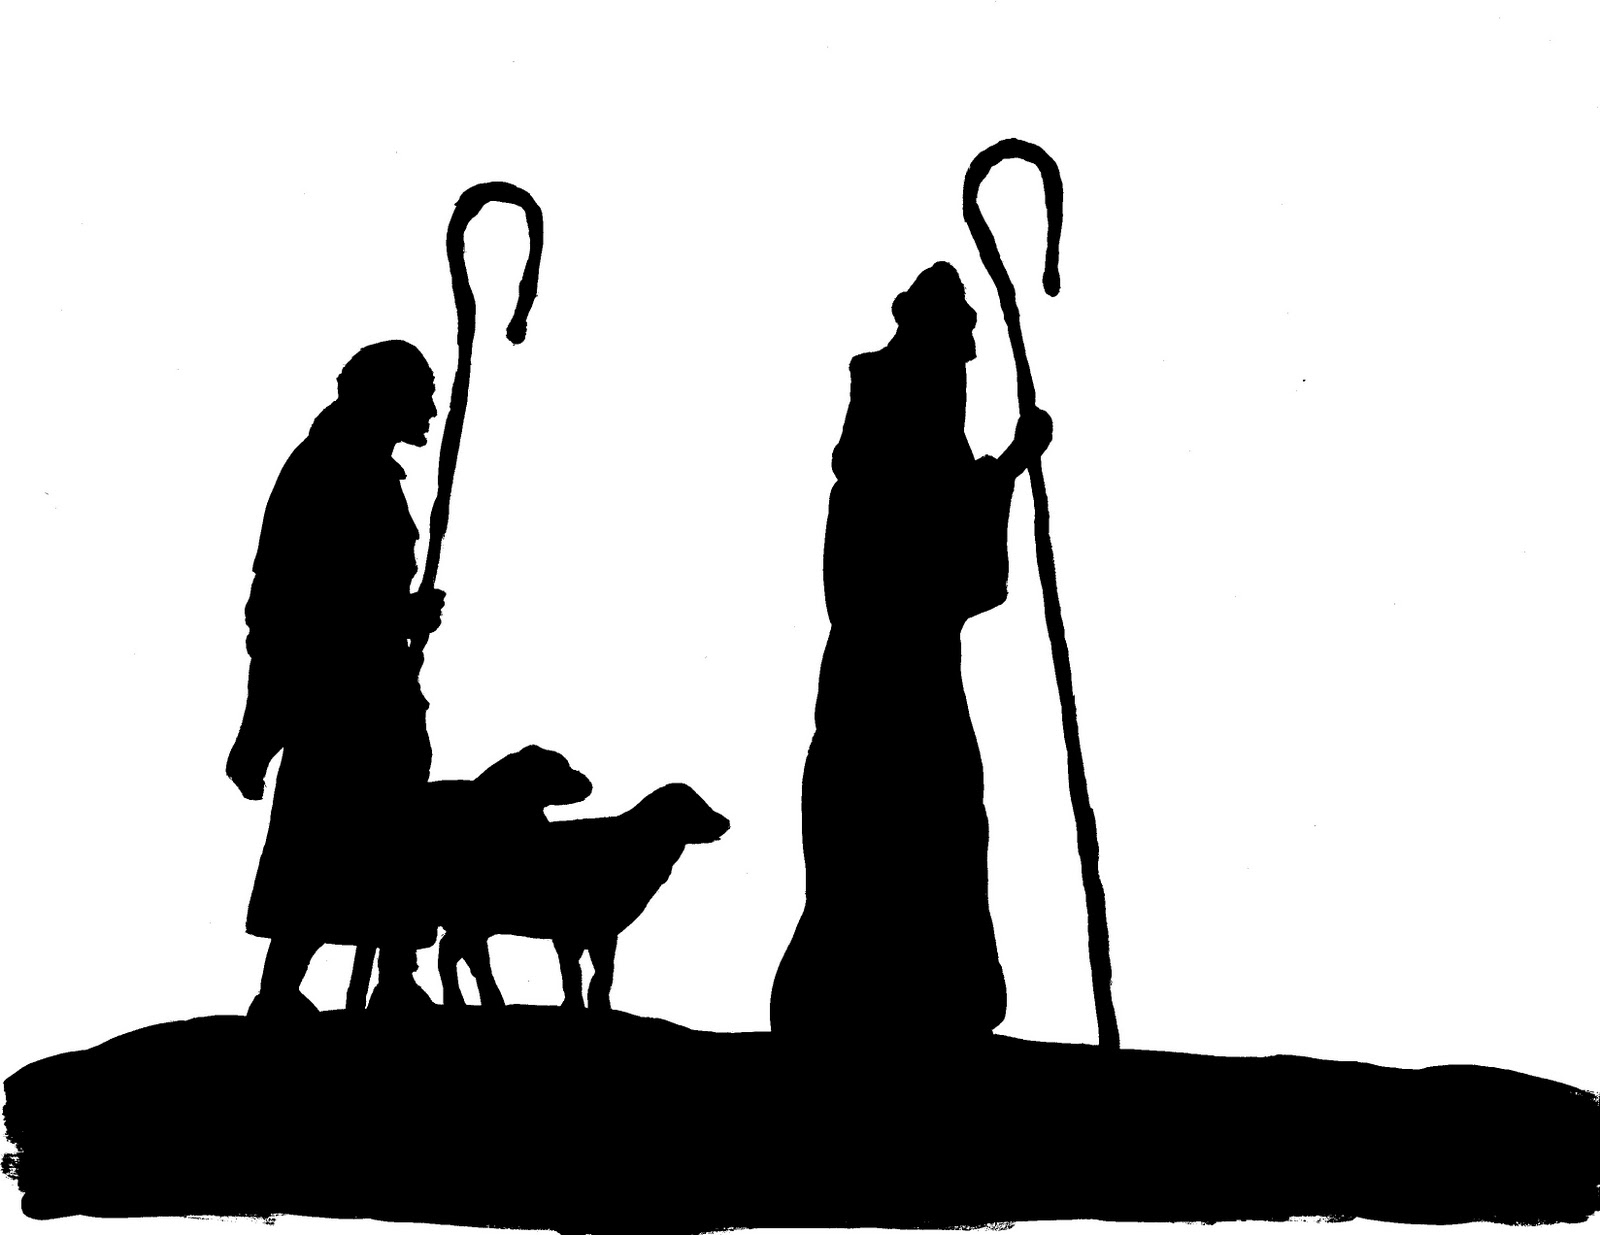 graphic relating to Nativity Scene Silhouette Printable known as Printable Nativity Silhouette at  Absolutely free for